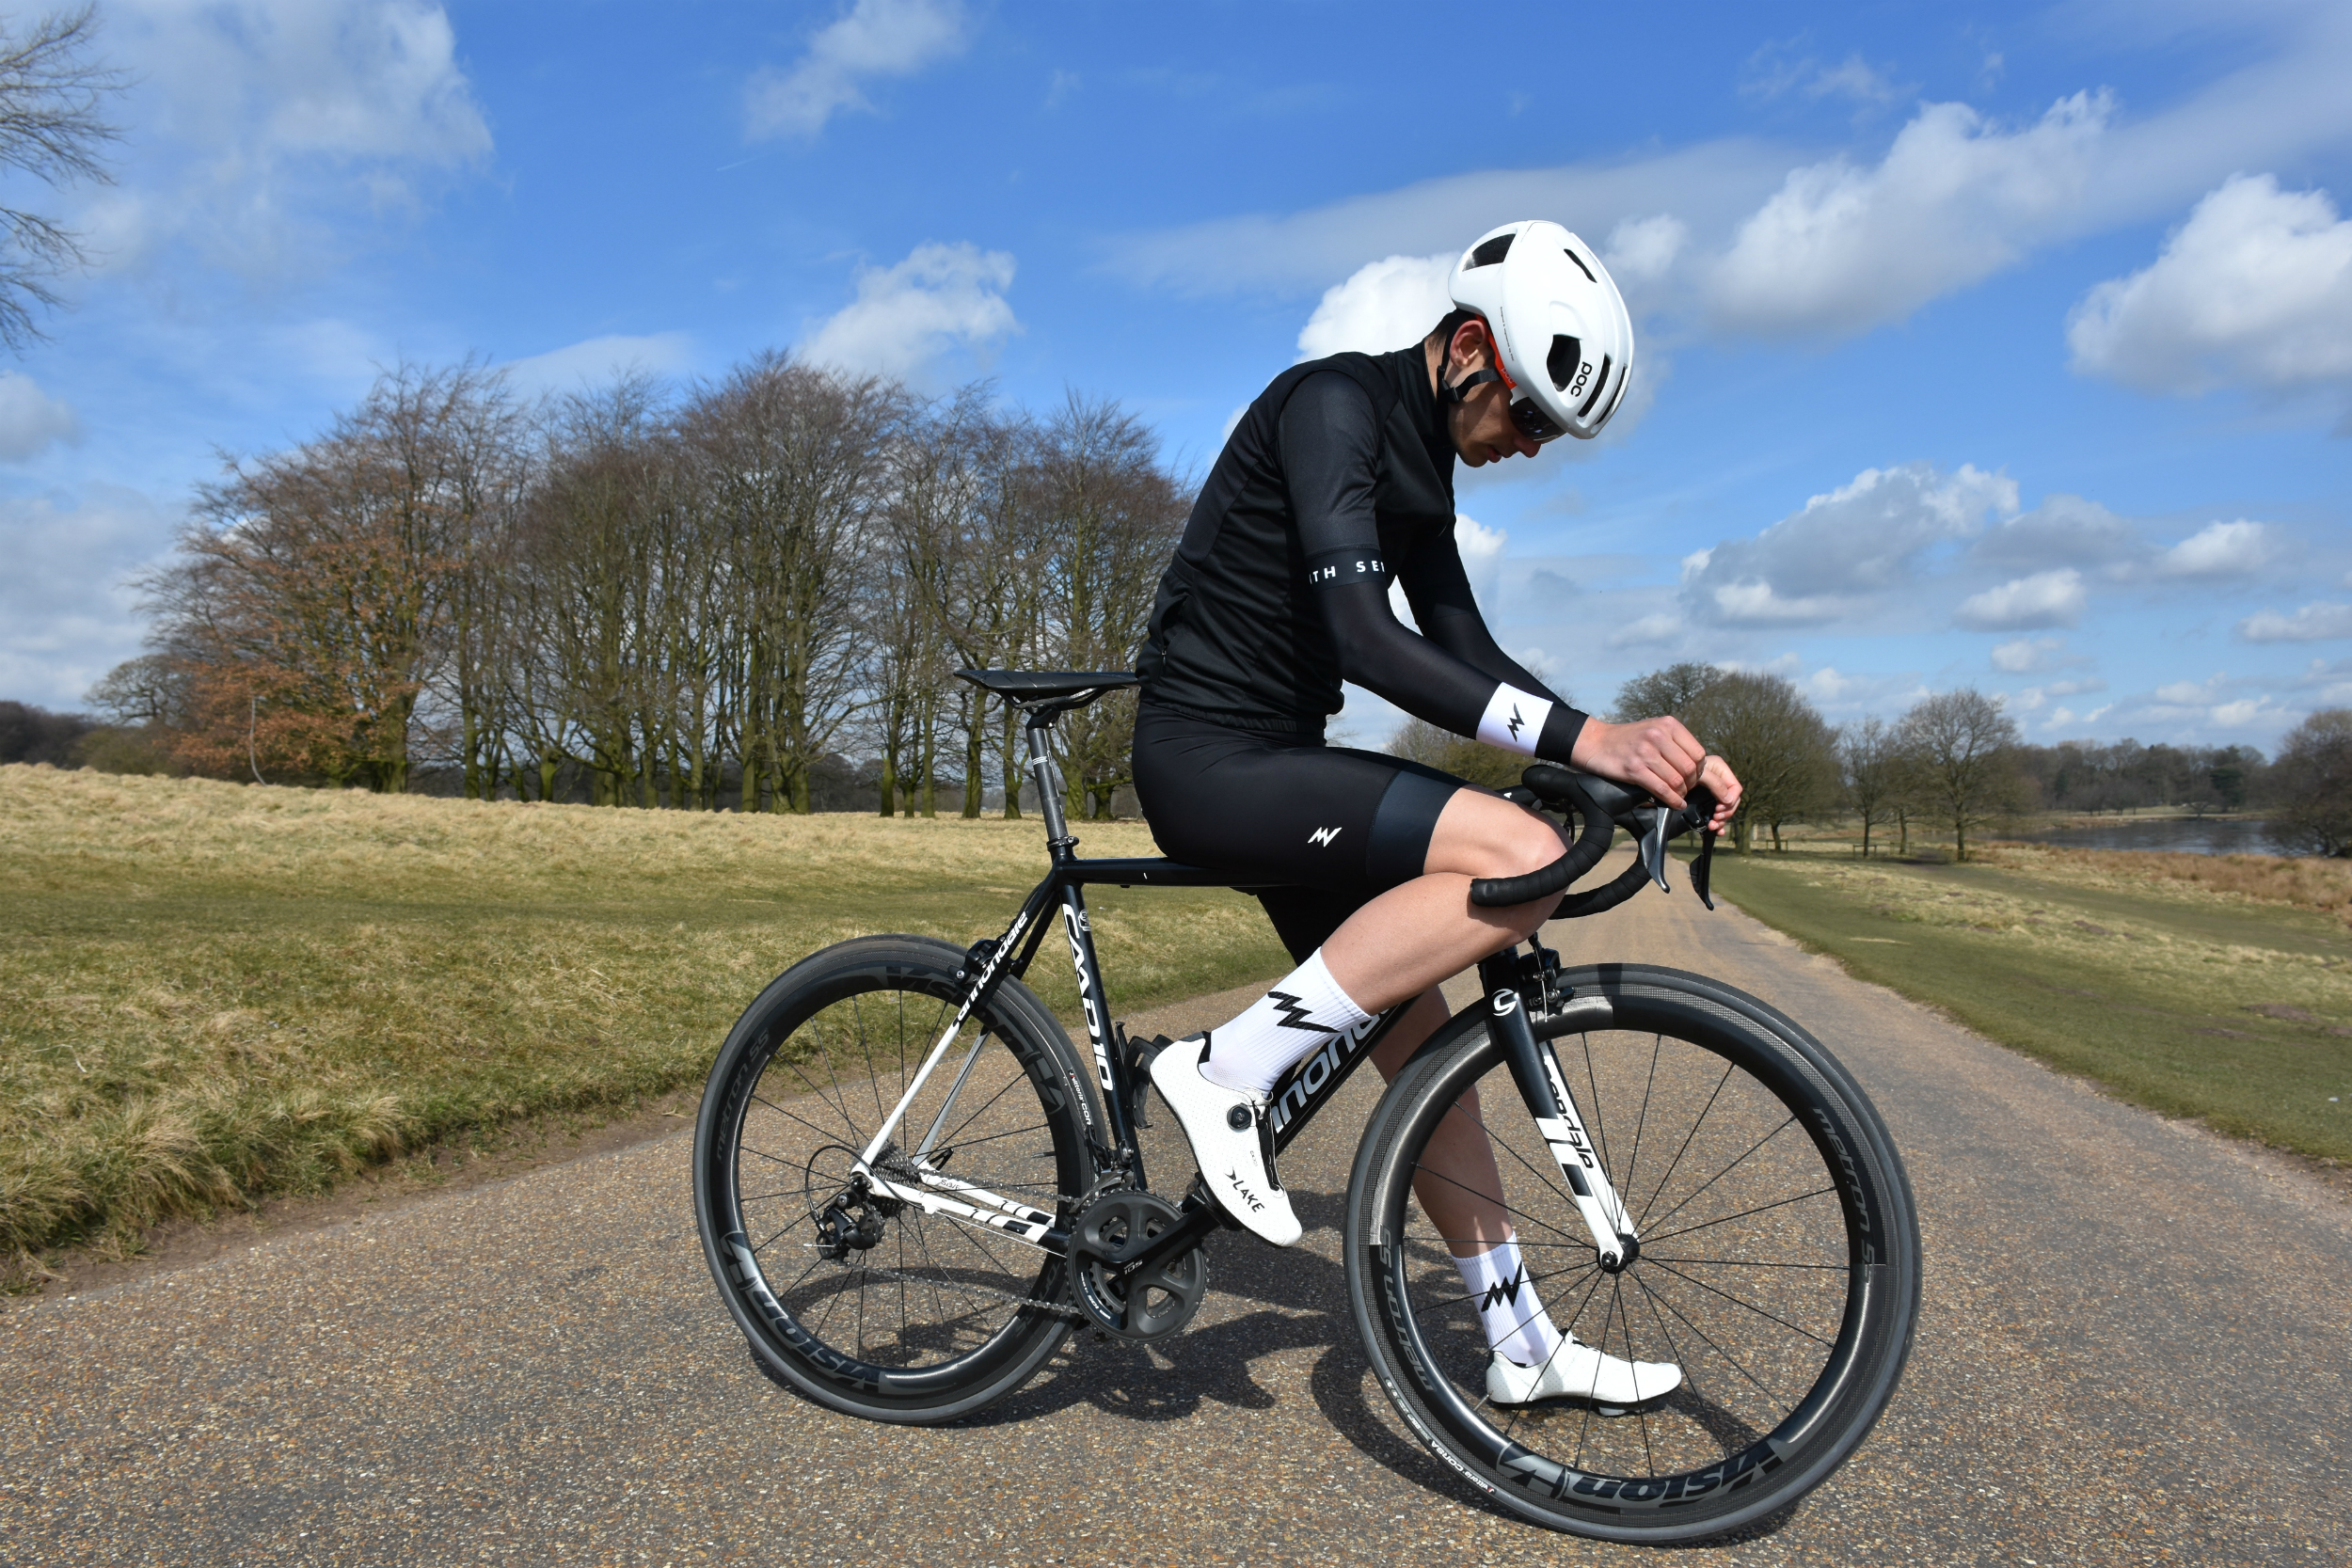 A cyclist posing in the Morvelo SS18 Stealth Nth series range